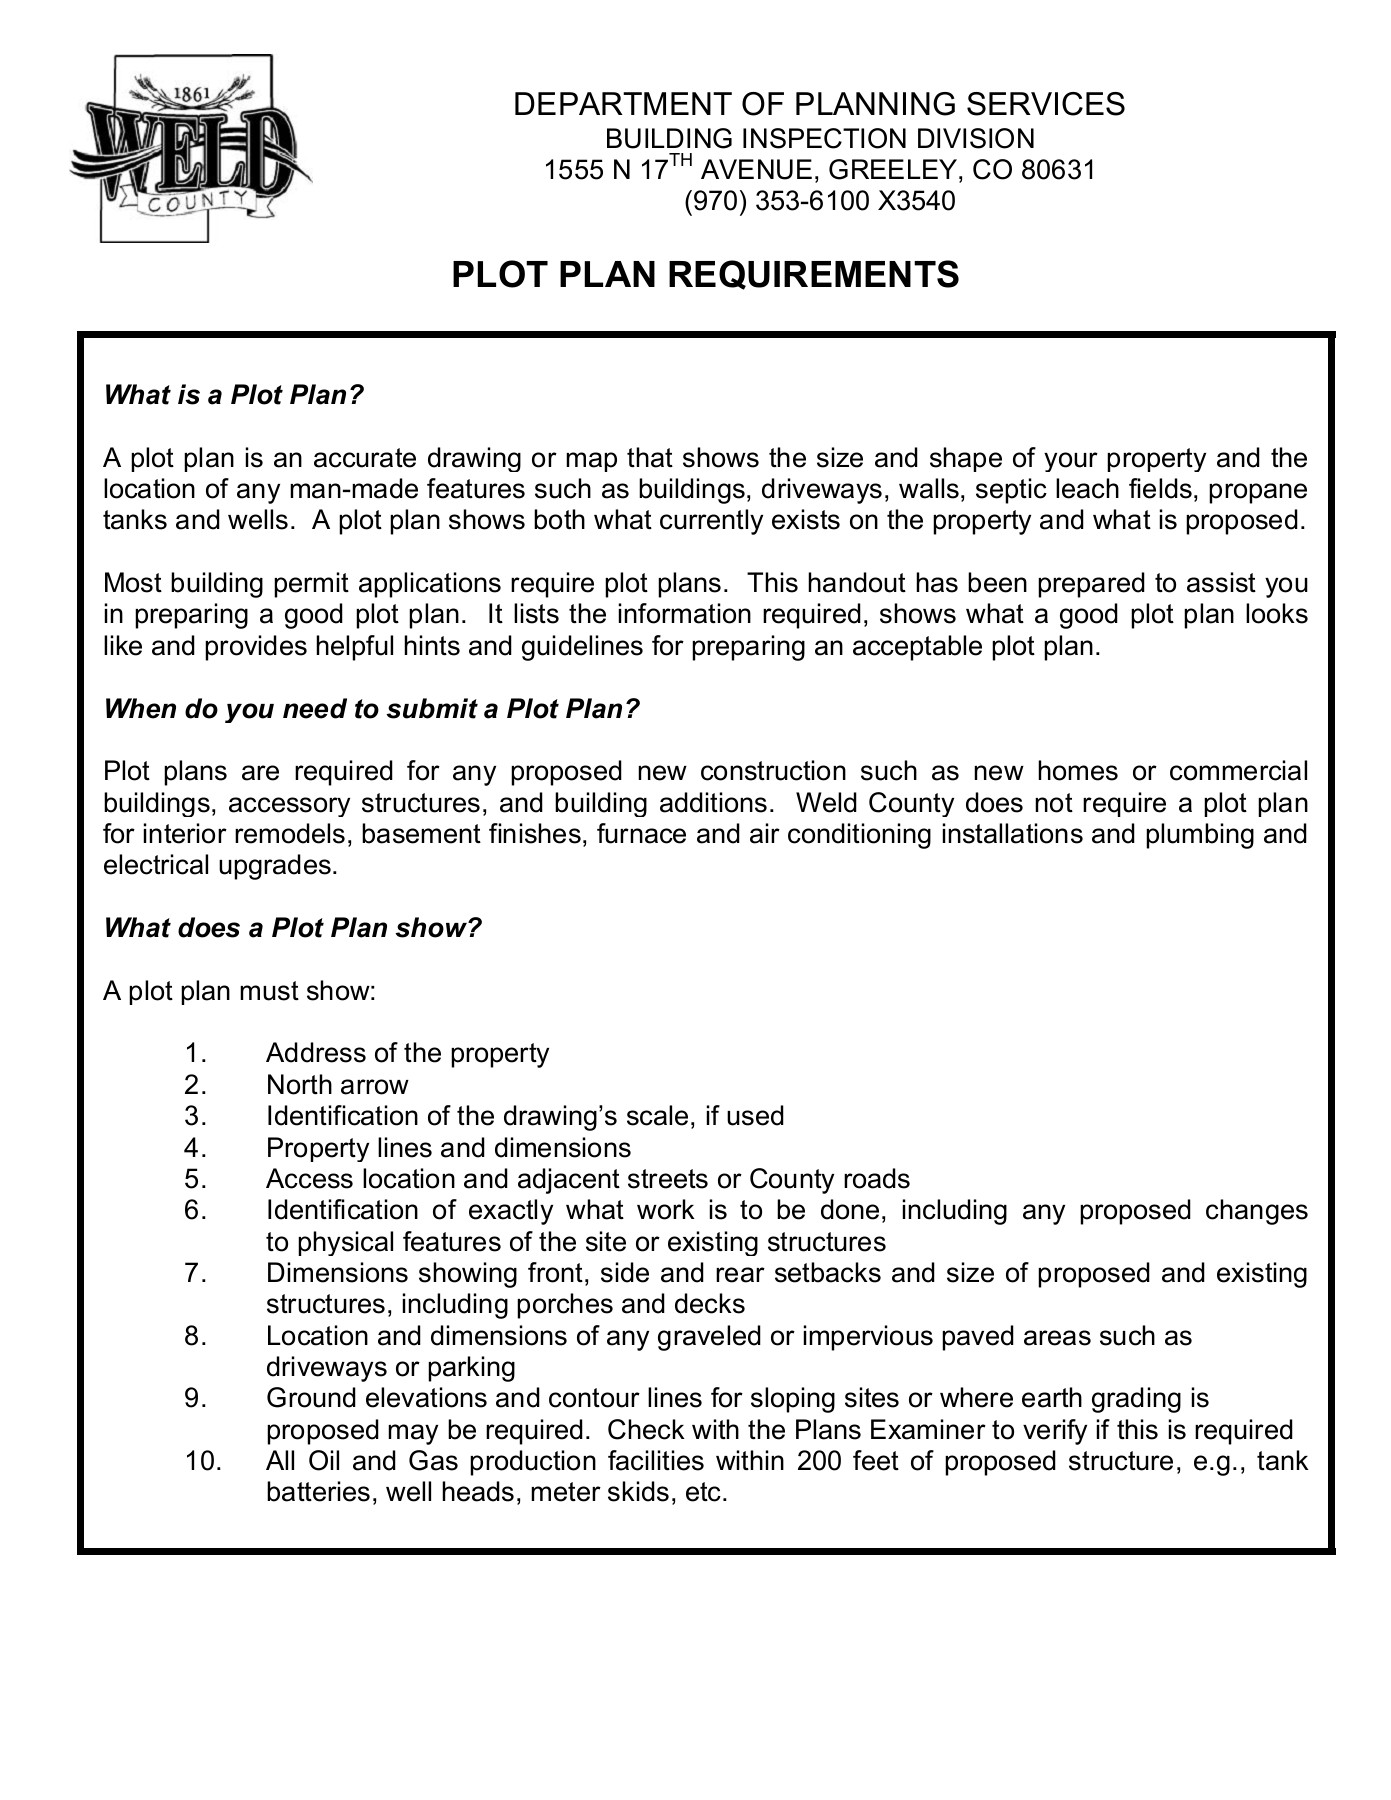 revised 01/2012 page 2 recorded plats and fill in the applicable  structures, landscaping, parking, property  how to prepare a plot plan:  step 1: determine